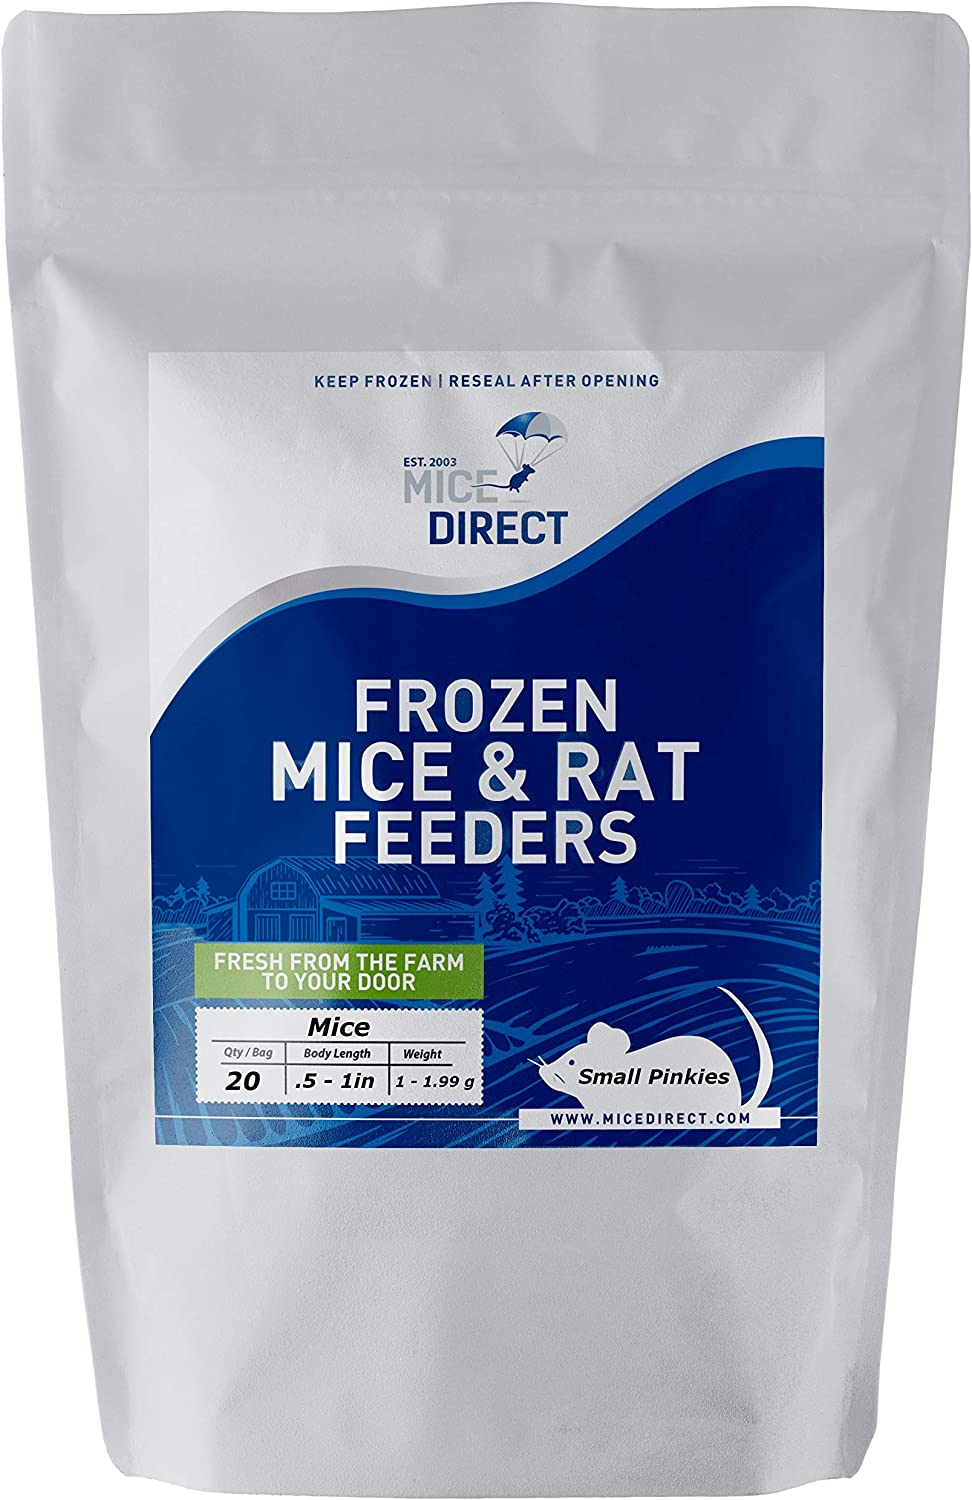 MiceDirect 20 Small Pinkie Mice: Pack of Frozen Small Pinkie Feeder Mice - Food for Corn Snakes, Ball Pythons, Lizards and Other Pet Reptiles - Freshest Snake Feed Supplies